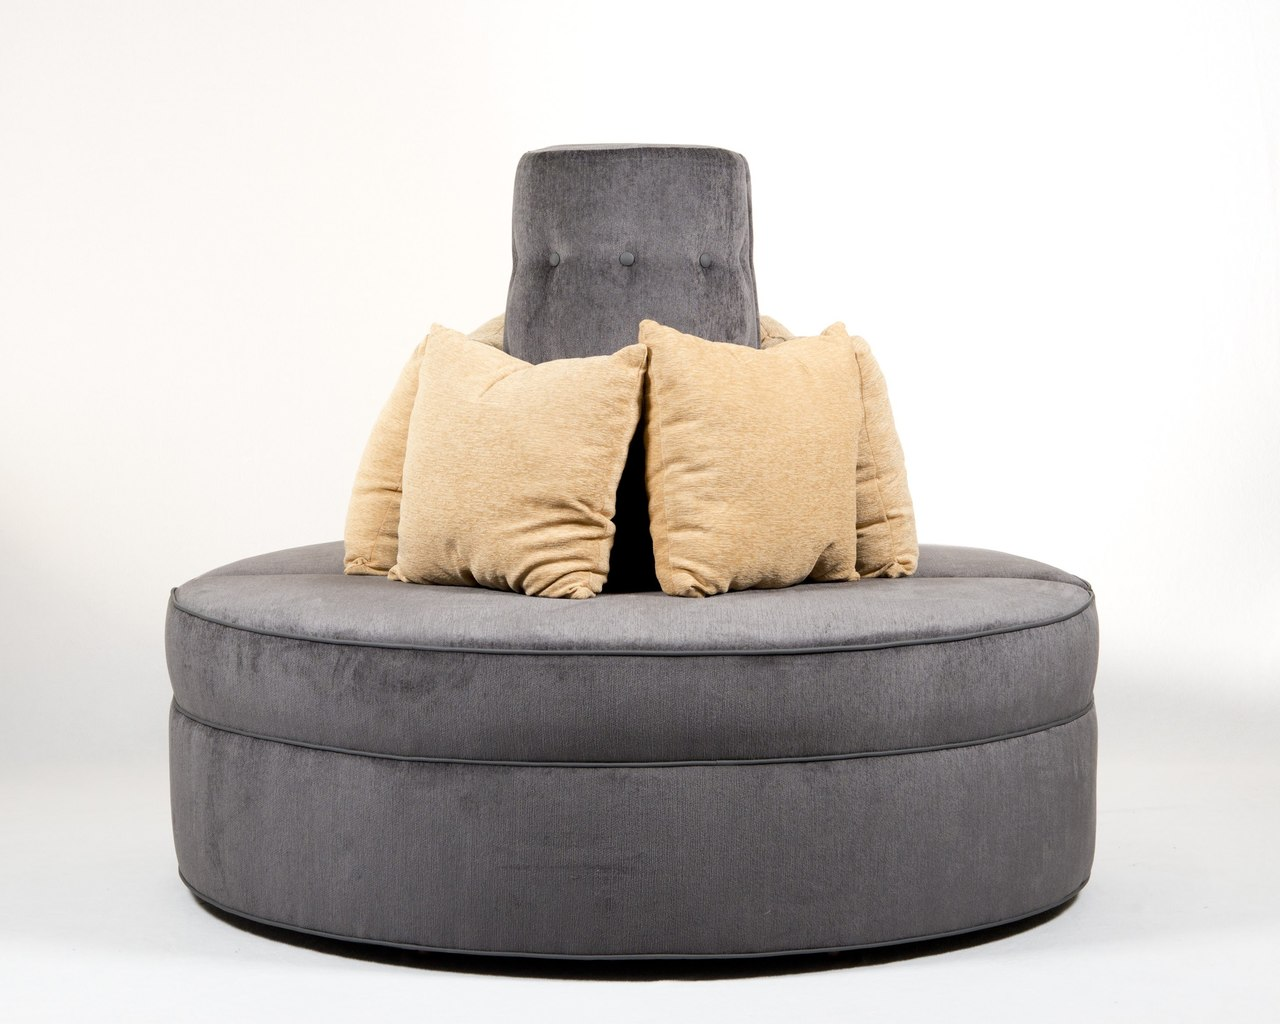 Awe Inspiring Round Banquette Settee Lobby Sofa In Gray Chenille Fabric Ncnpc Chair Design For Home Ncnpcorg